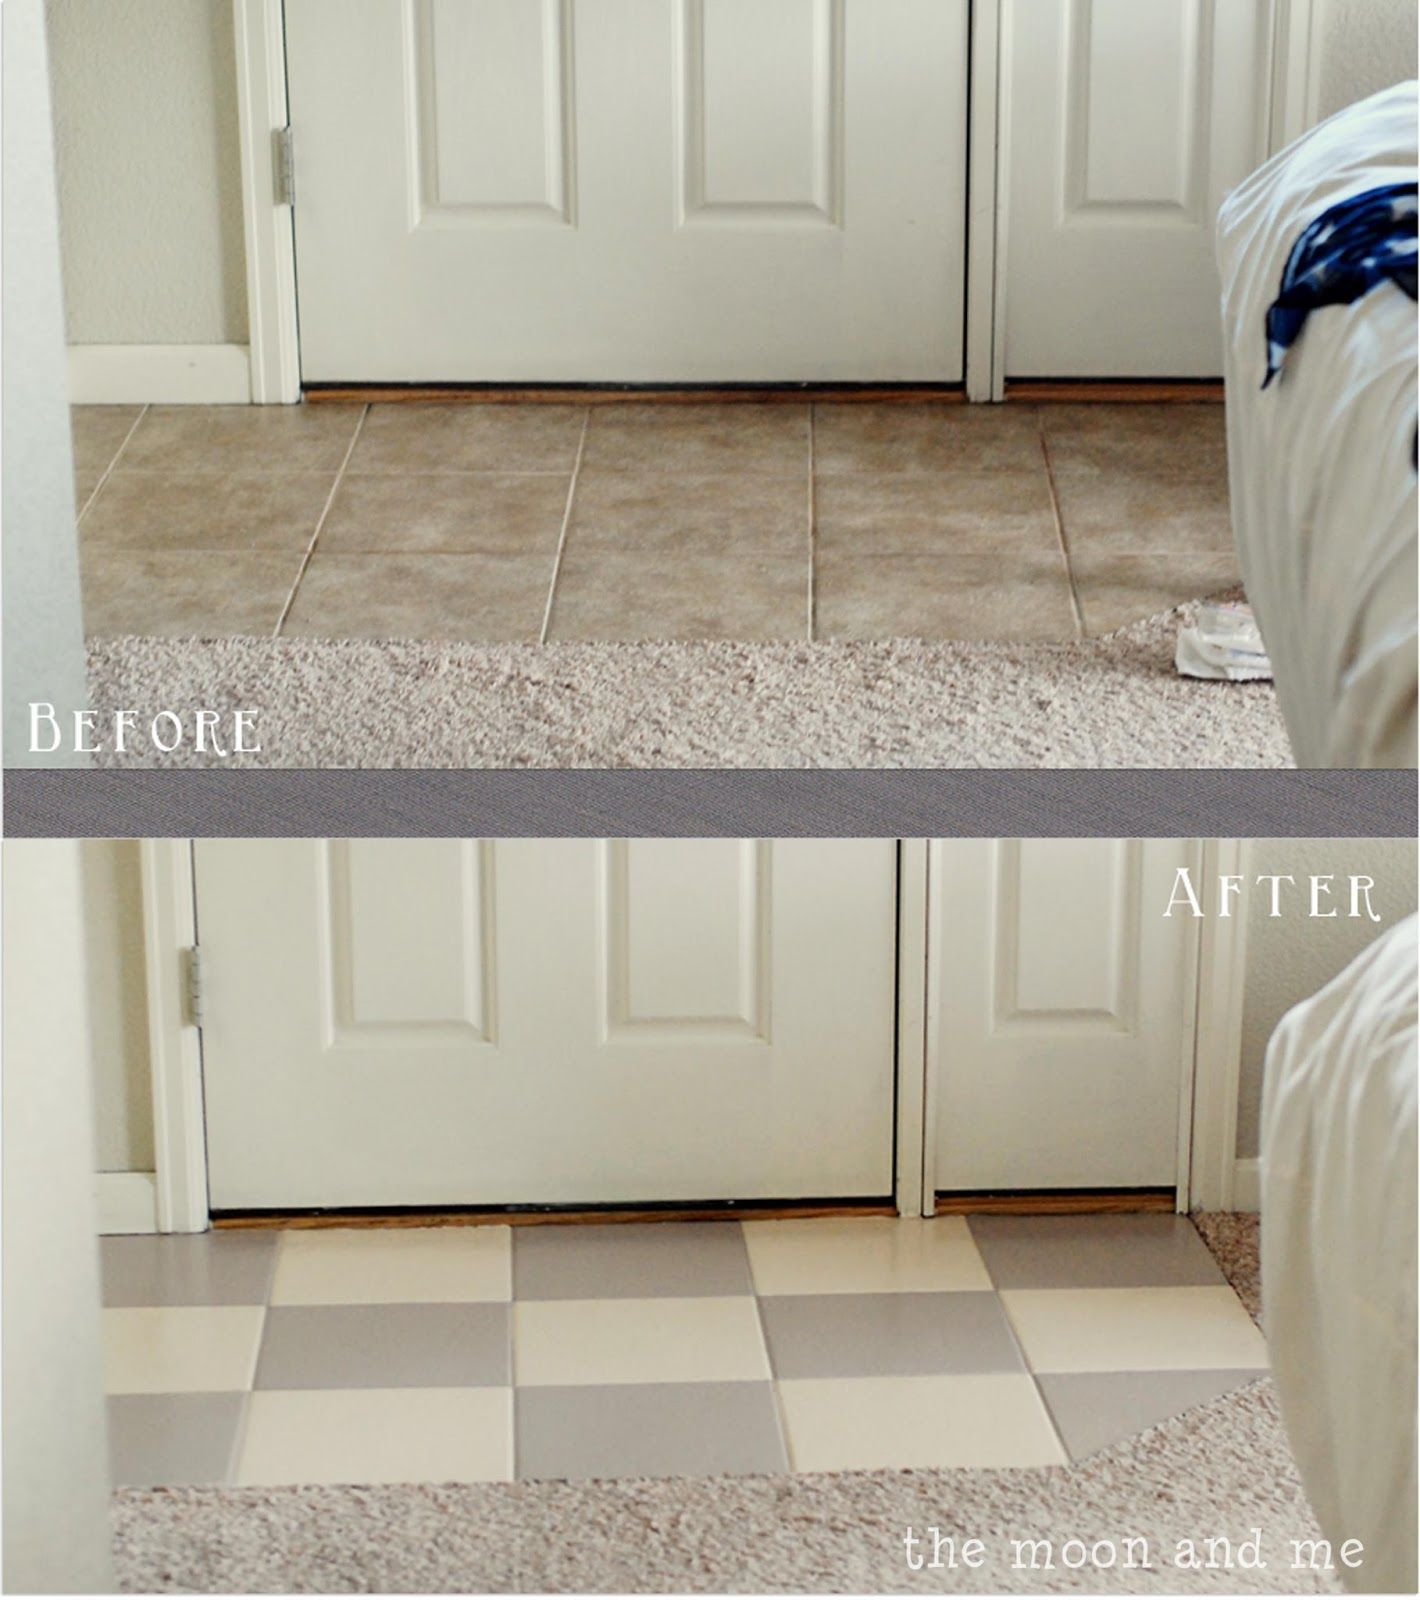 Floor painting a guide to the whats and hows of painting your floor home decorating trends homedit dailygadgetfo Image collections